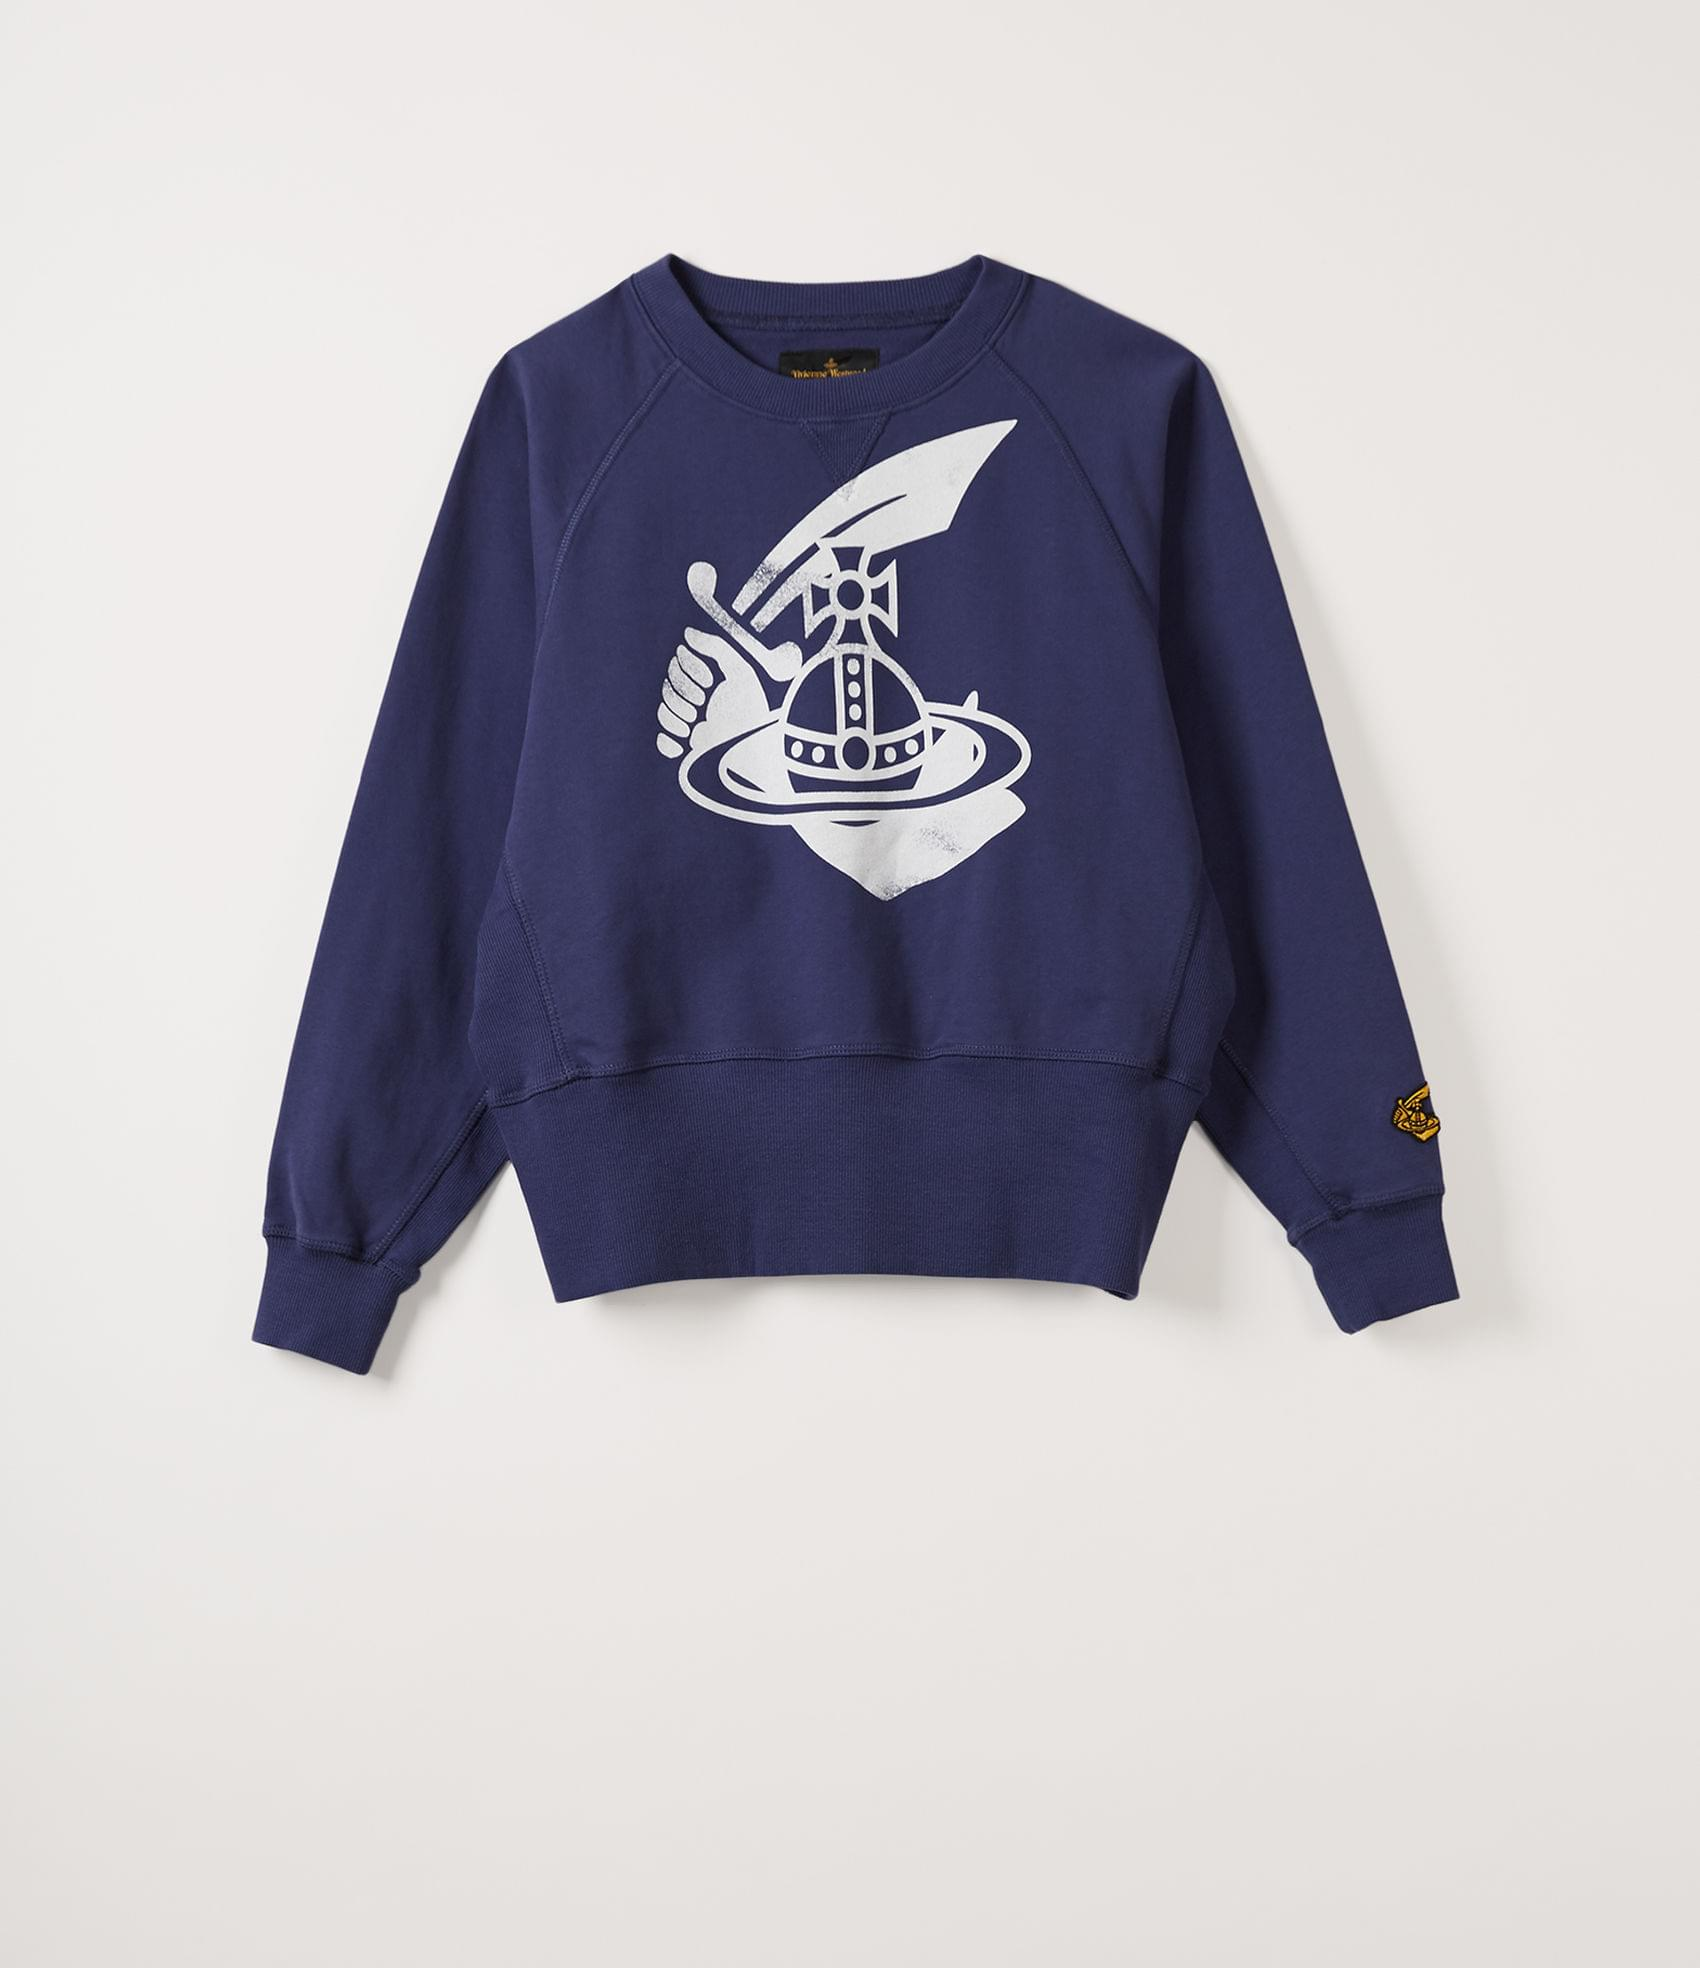 Vivienne Westwood ATHLETIC SWEATSHIRT NAVY